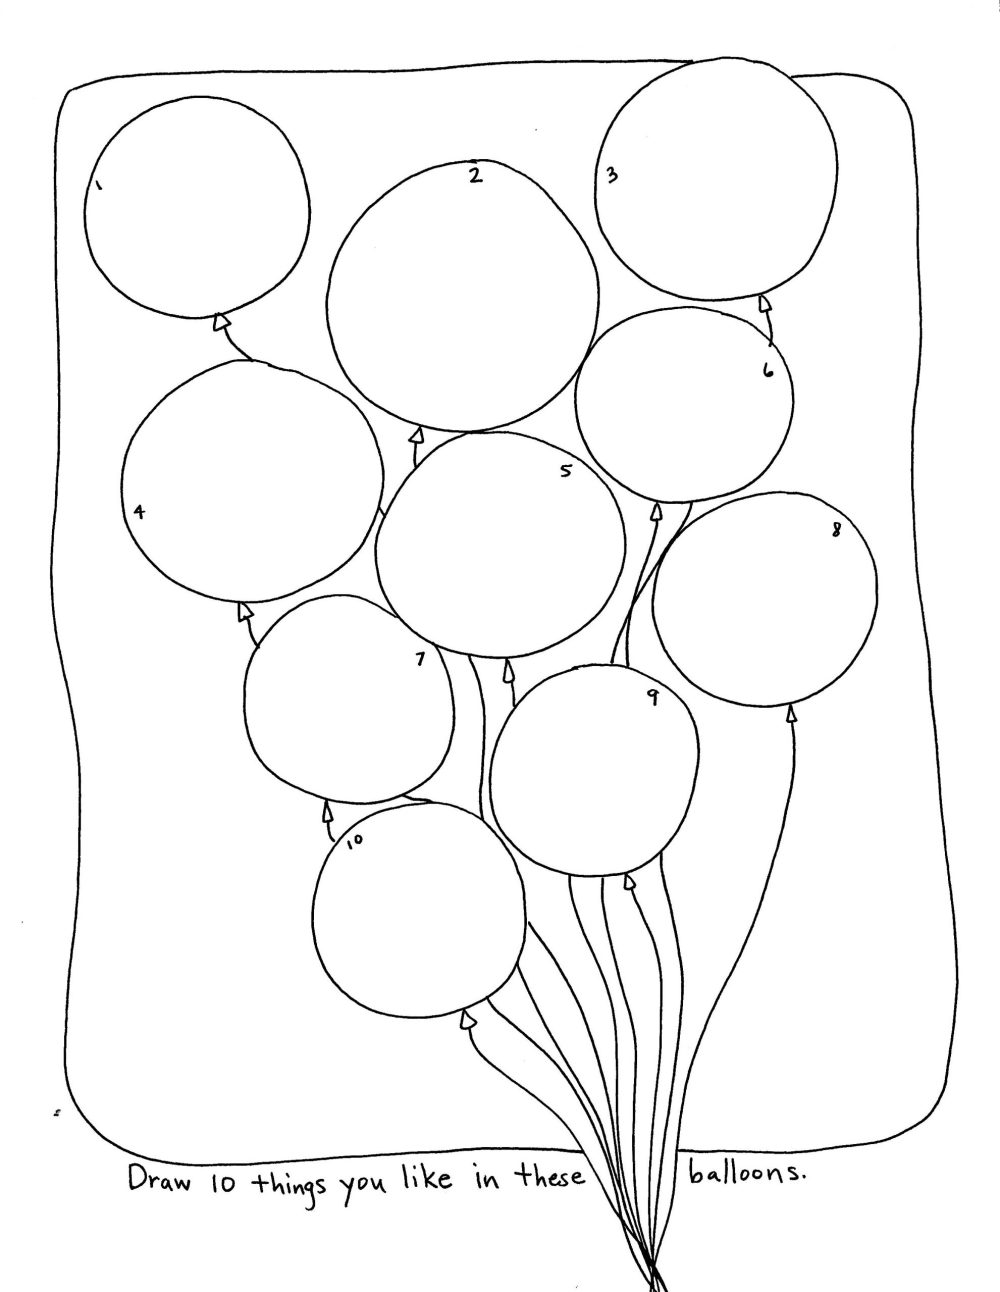 Draw 10 things you like in these balloons